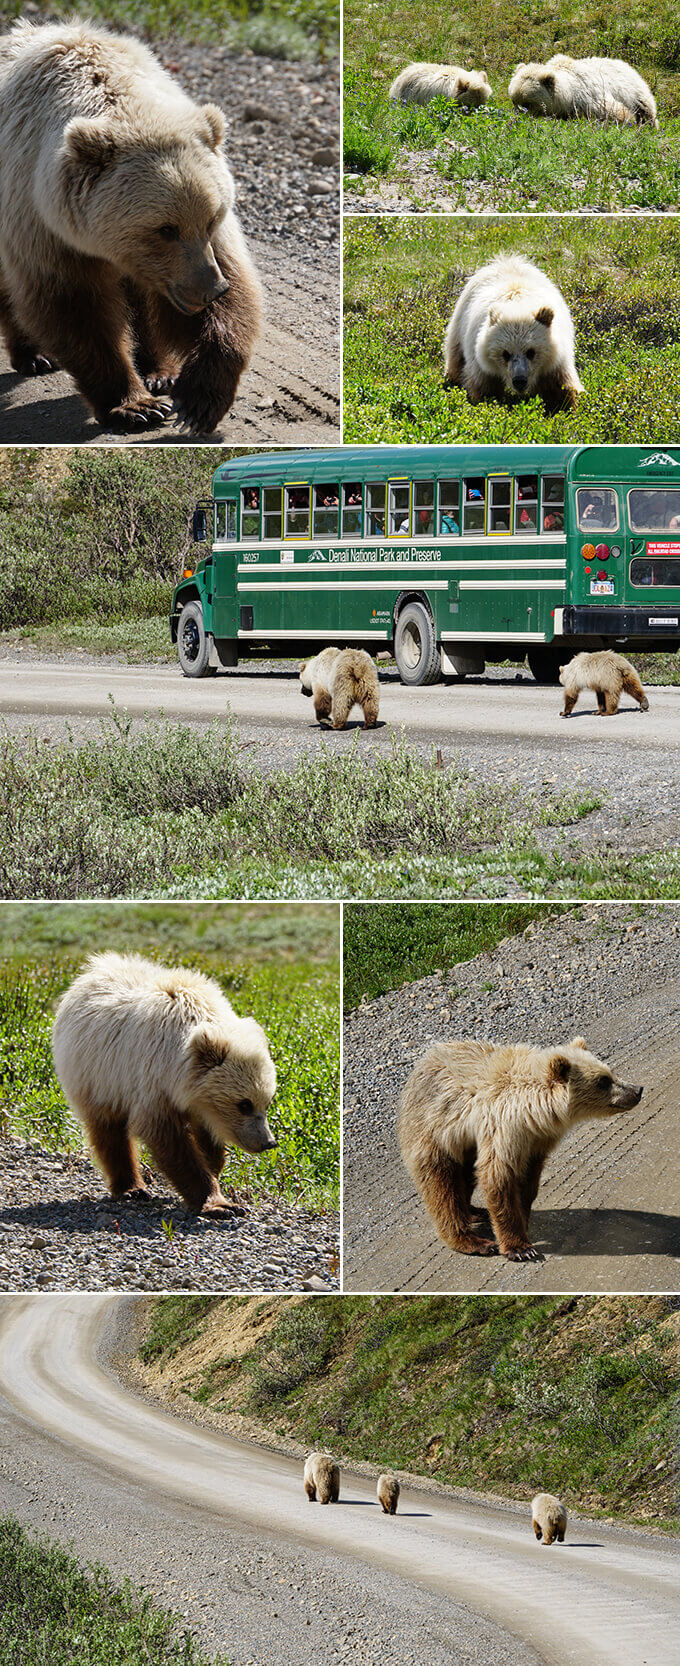 Into the wild Alaska - Grizzly bears at Denali National Park, Alaska | www.viktoriastable.com